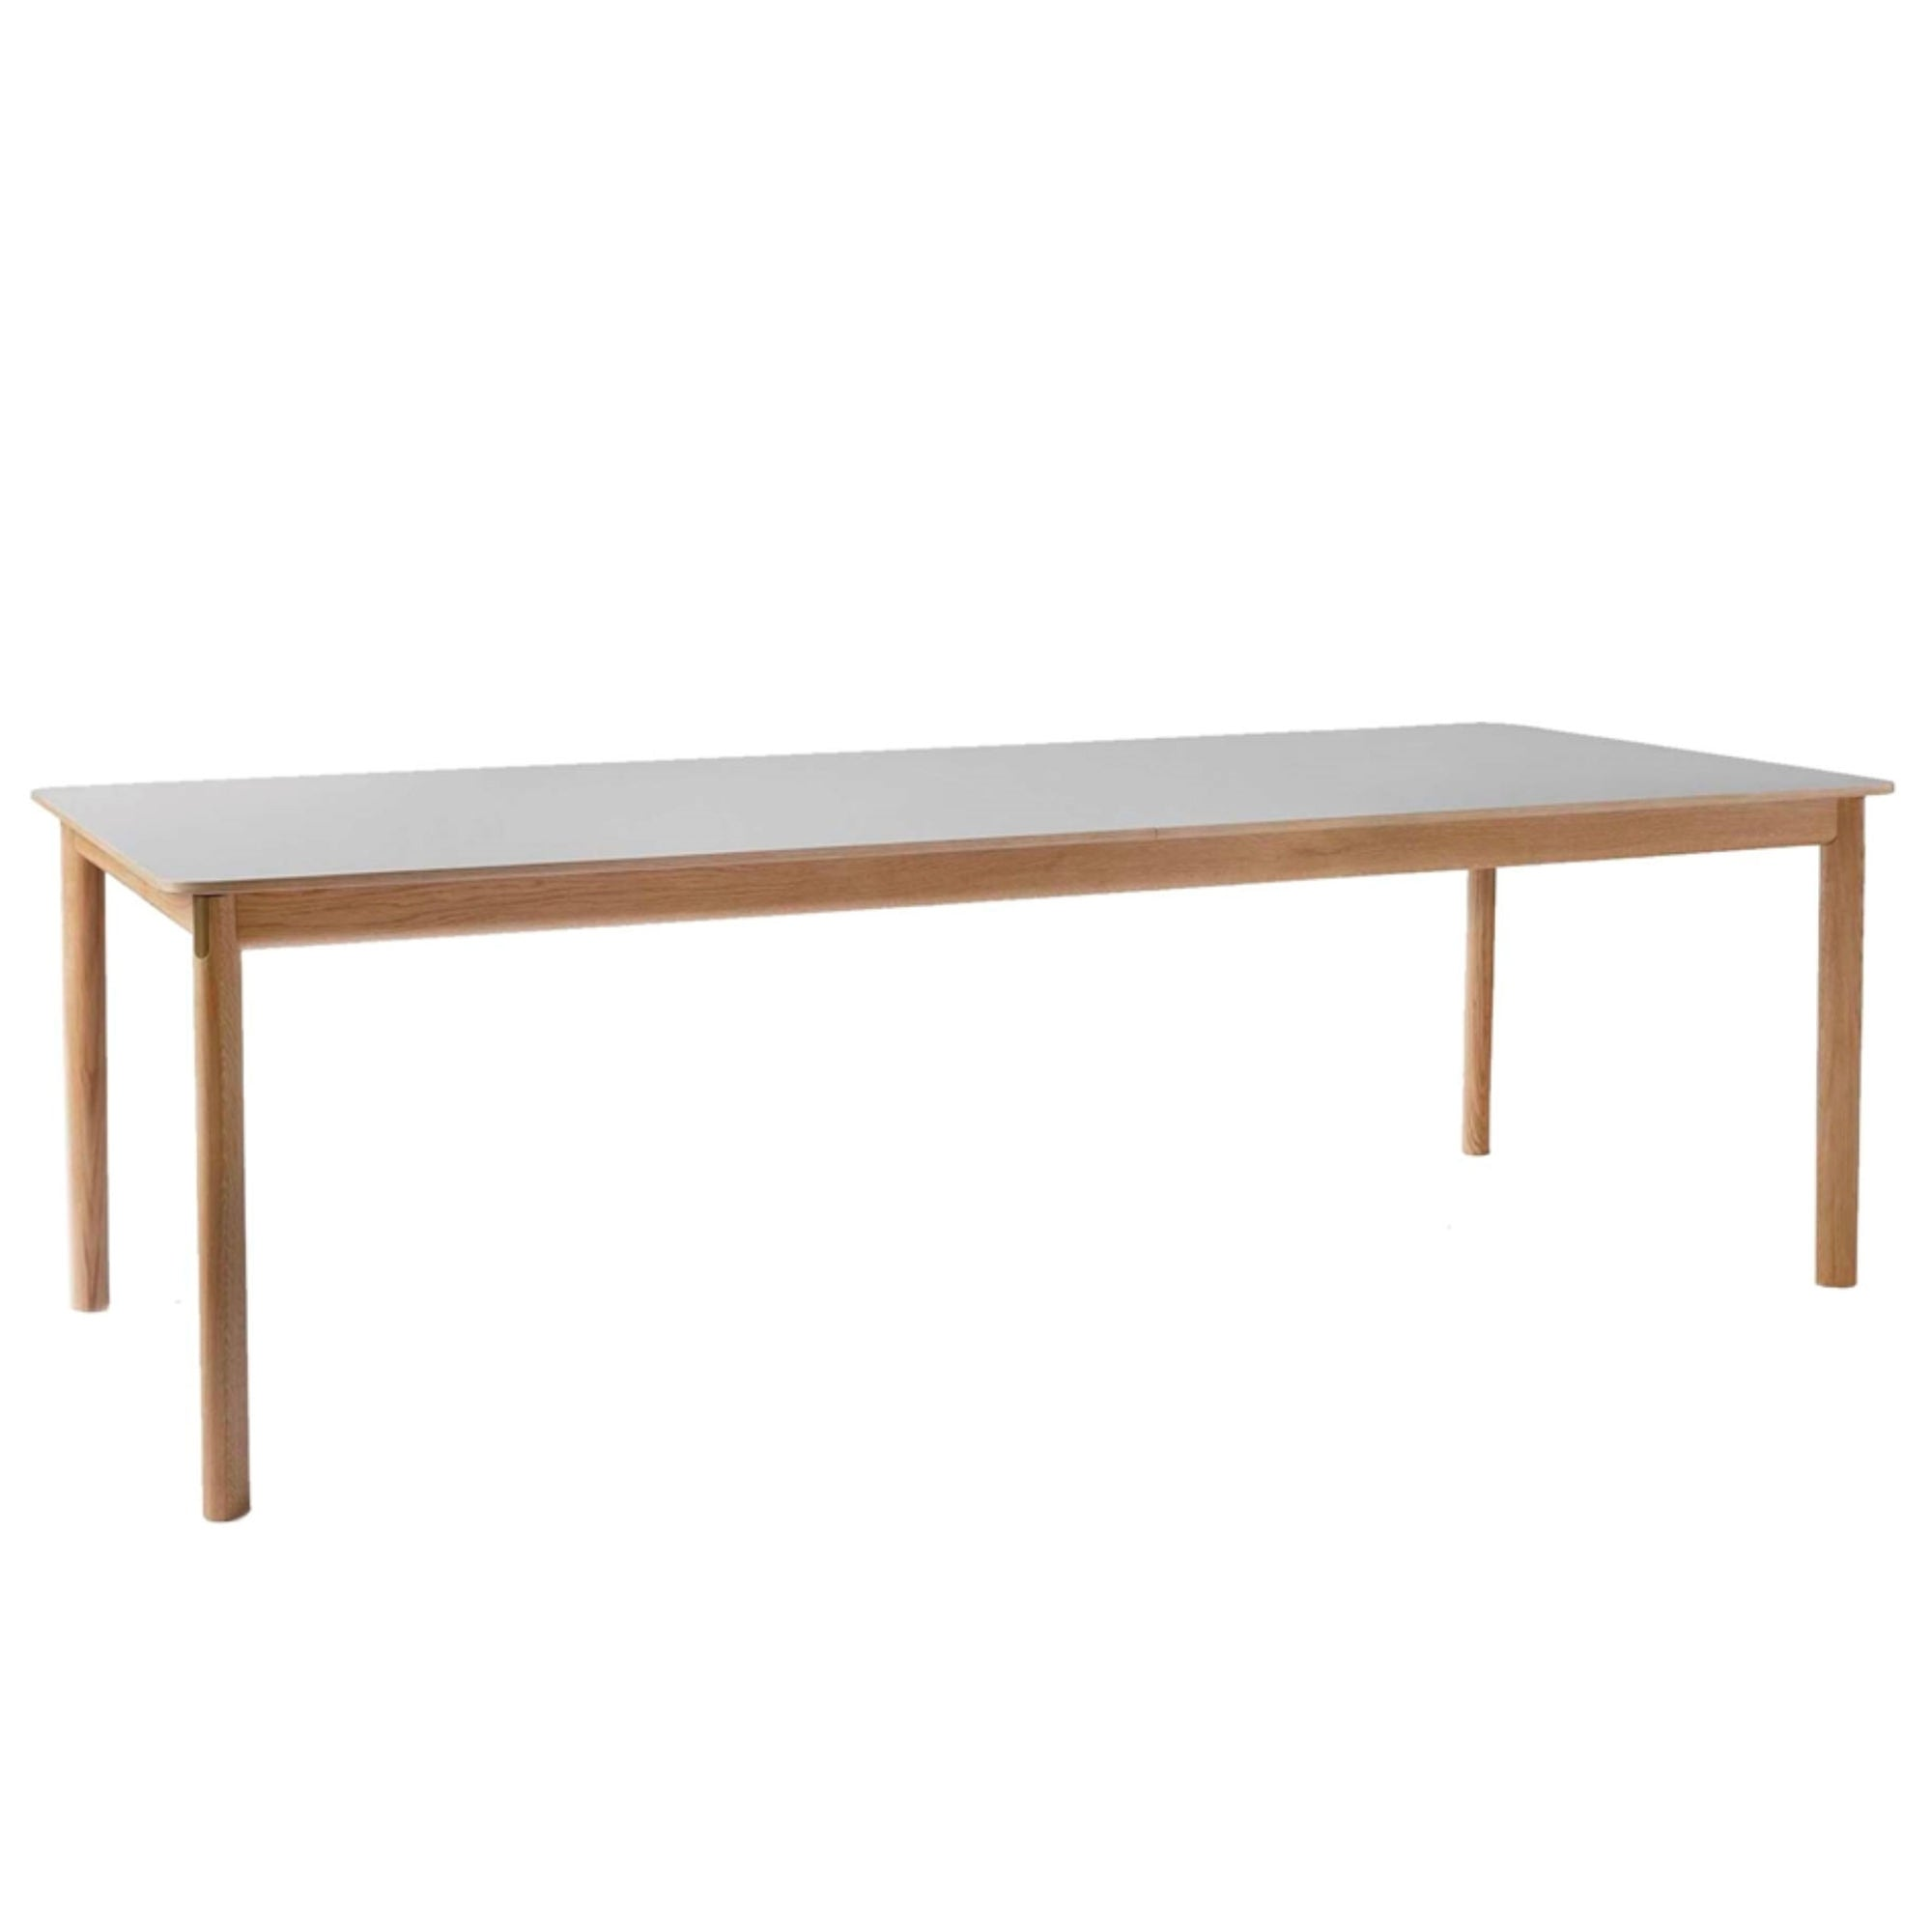 &Tradition Patch HW2 extendable table, white oiled oak